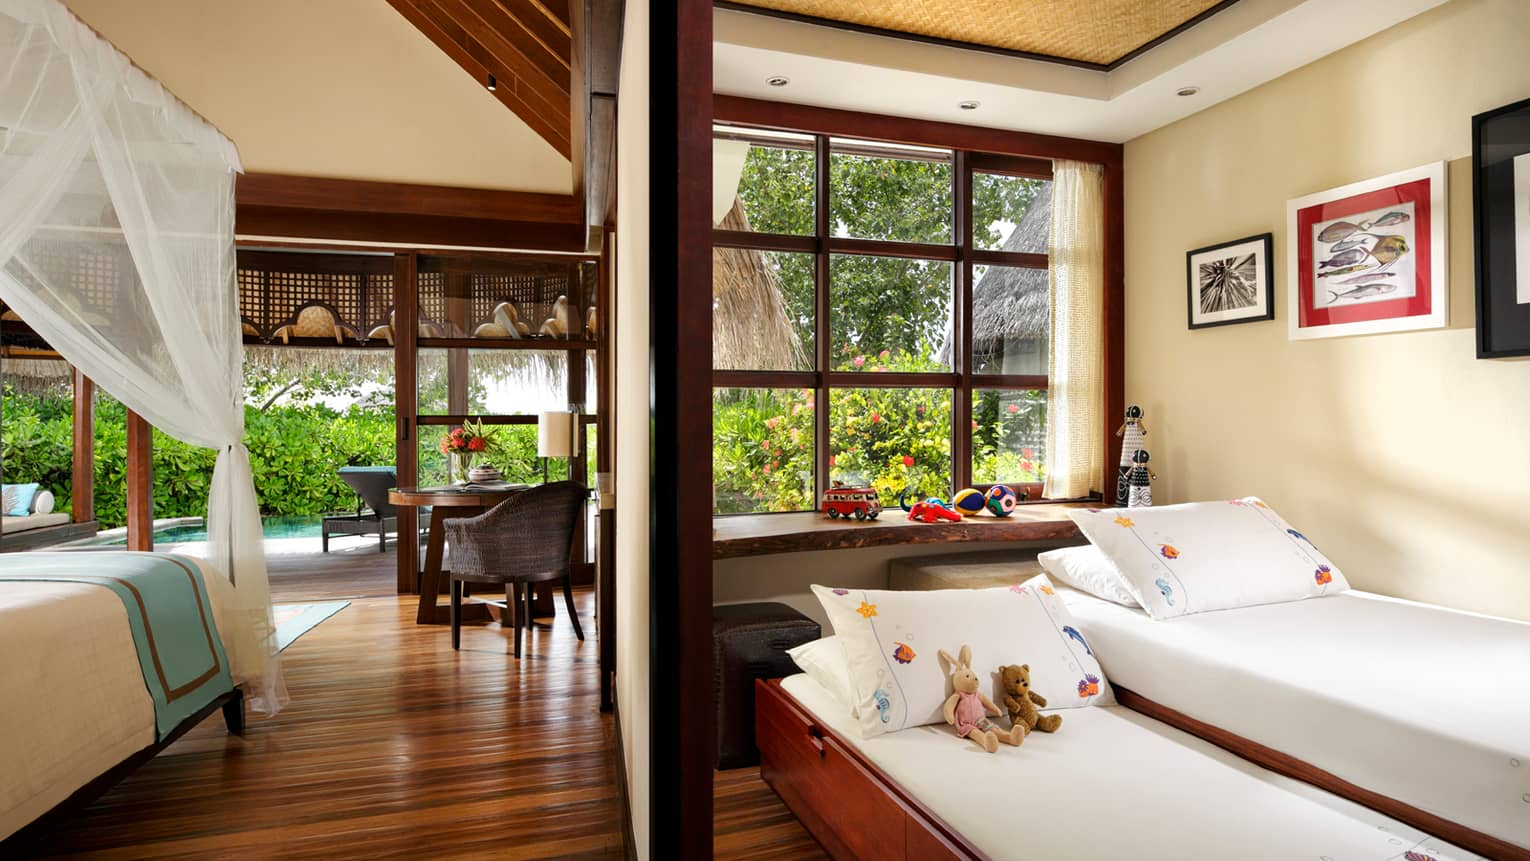 Sunrise Family Beach Bungalow, two kids beds and toys beside bedroom with canopy bed